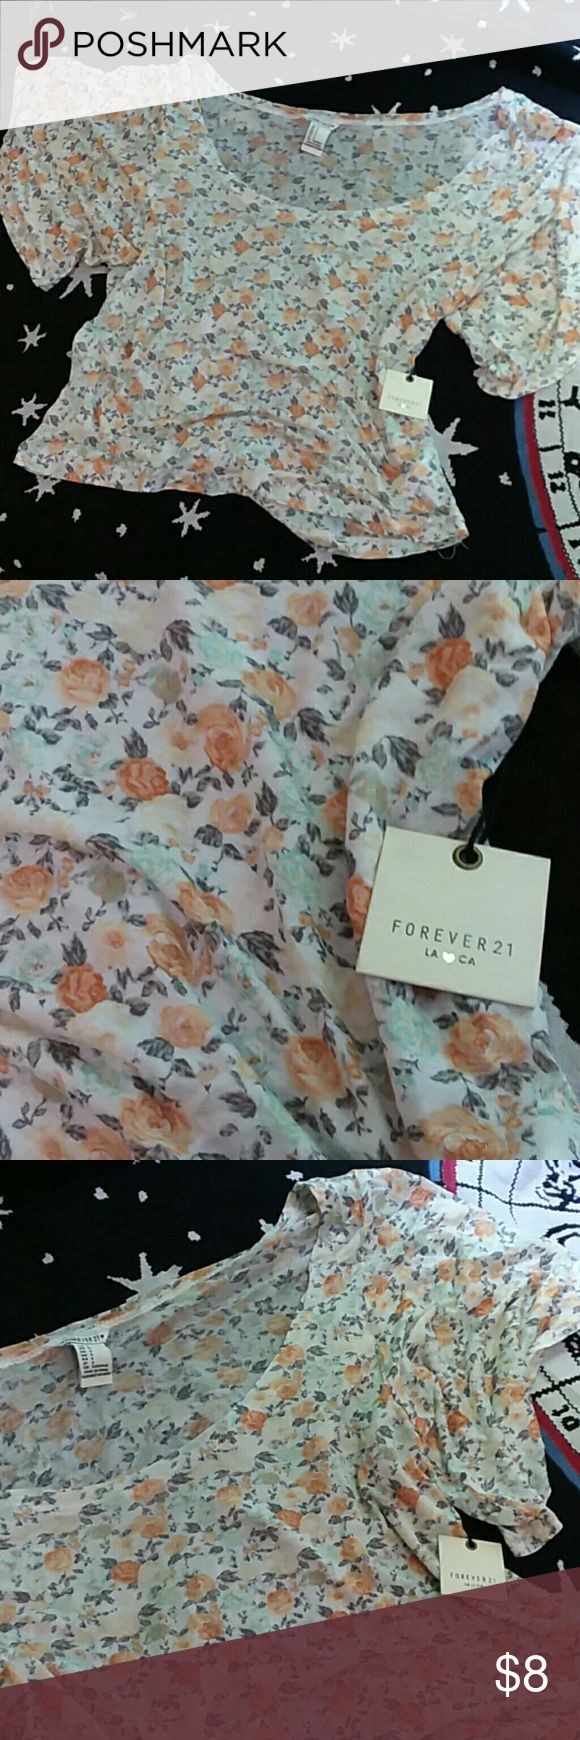 Floral crop top S NWT F21 crop top. Super soft material. Perfect for summer Forever 21 Tops Crop Tops